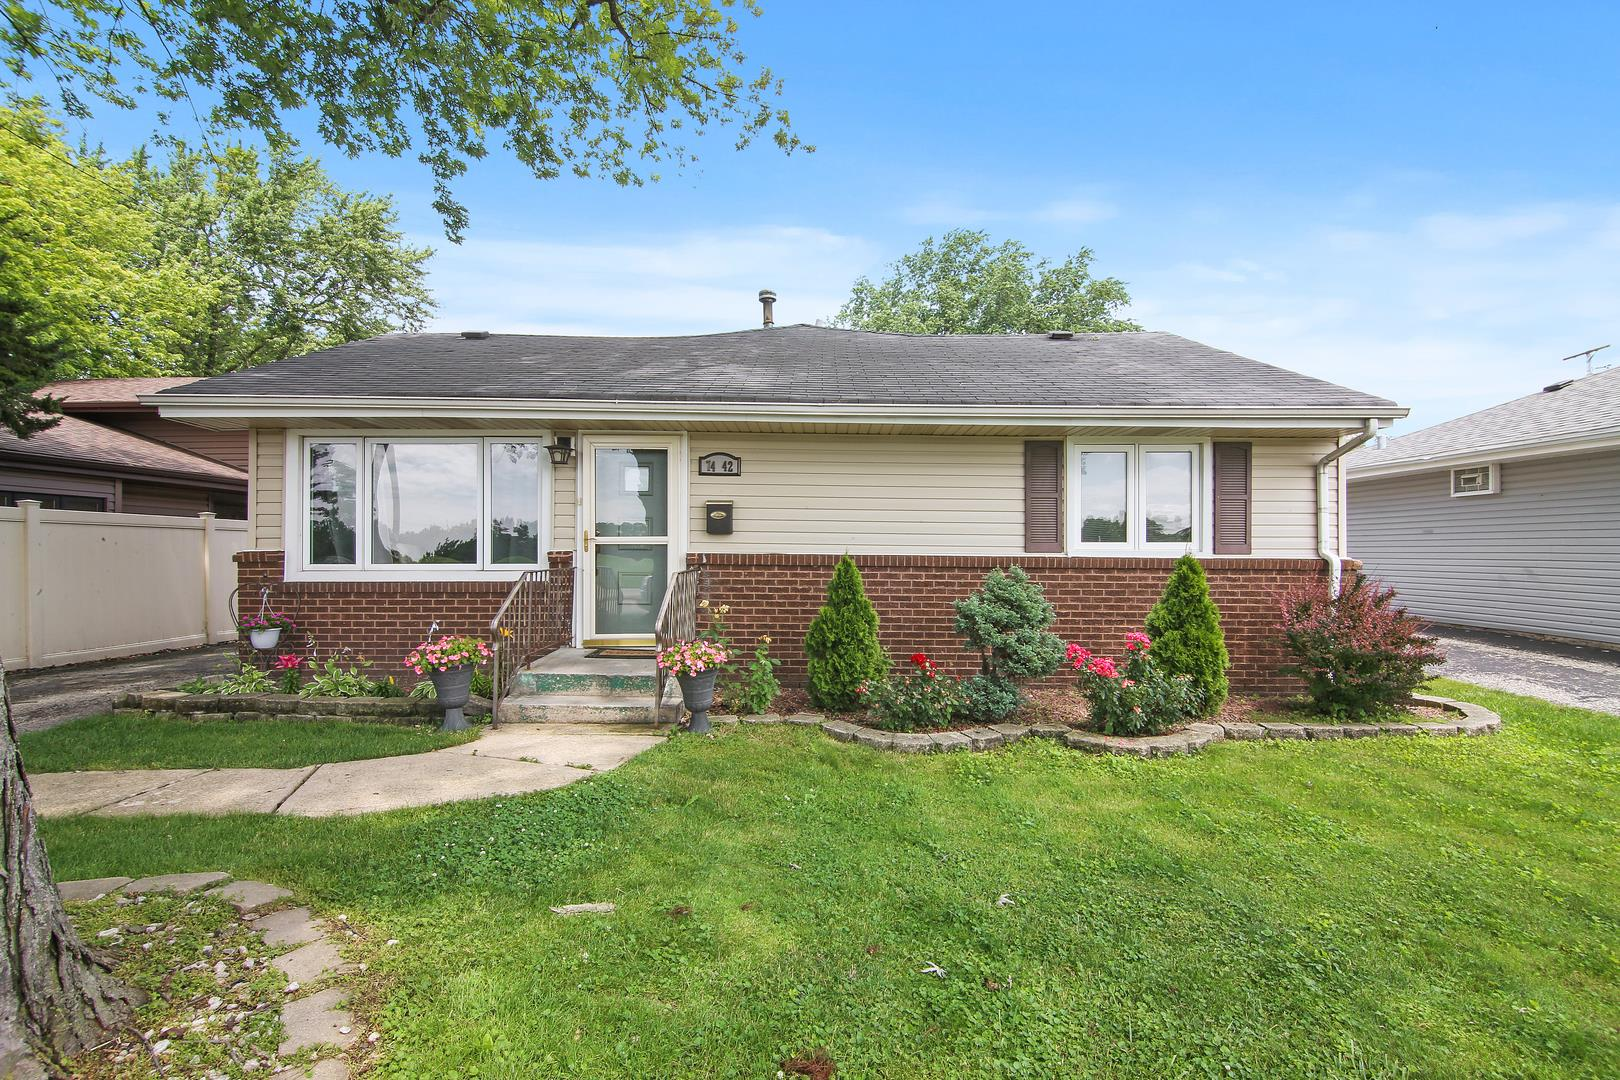 7442 W 115th Street, Worth, IL 60482 - #: 10475525